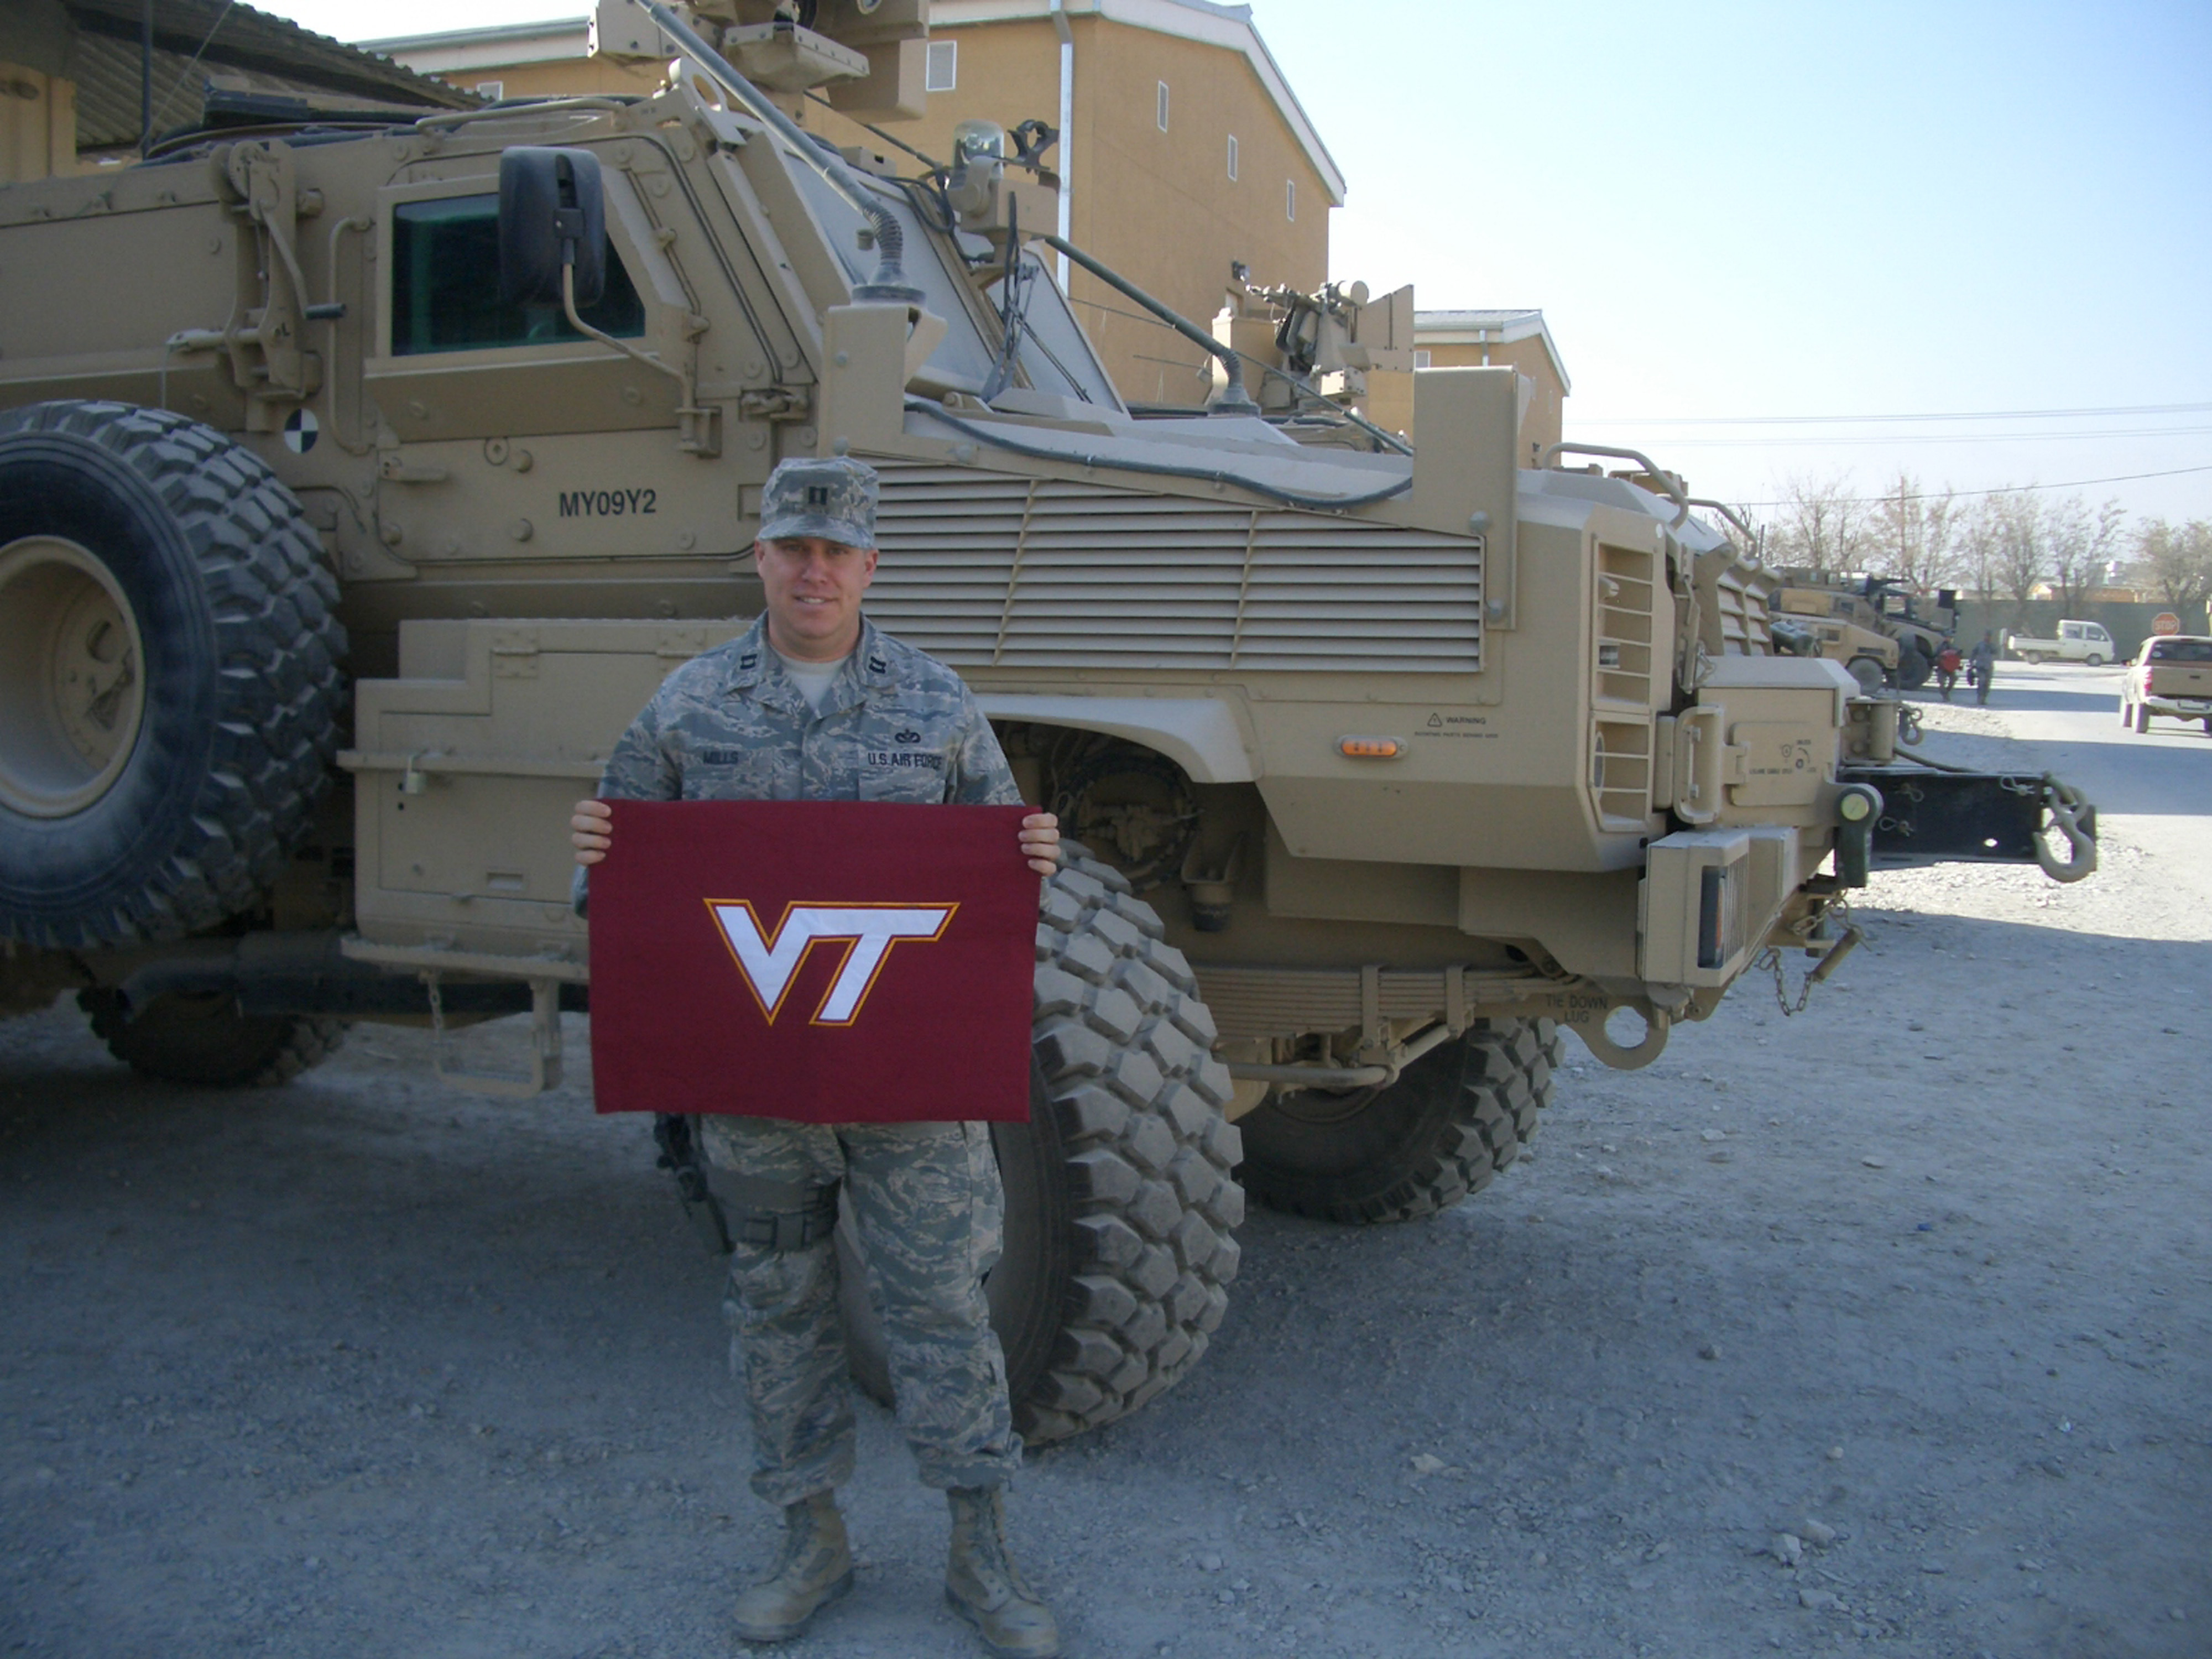 Capt. Craig Mills, U.S. Air Force, Virginia Tech Corps of Cadets Class of 2002